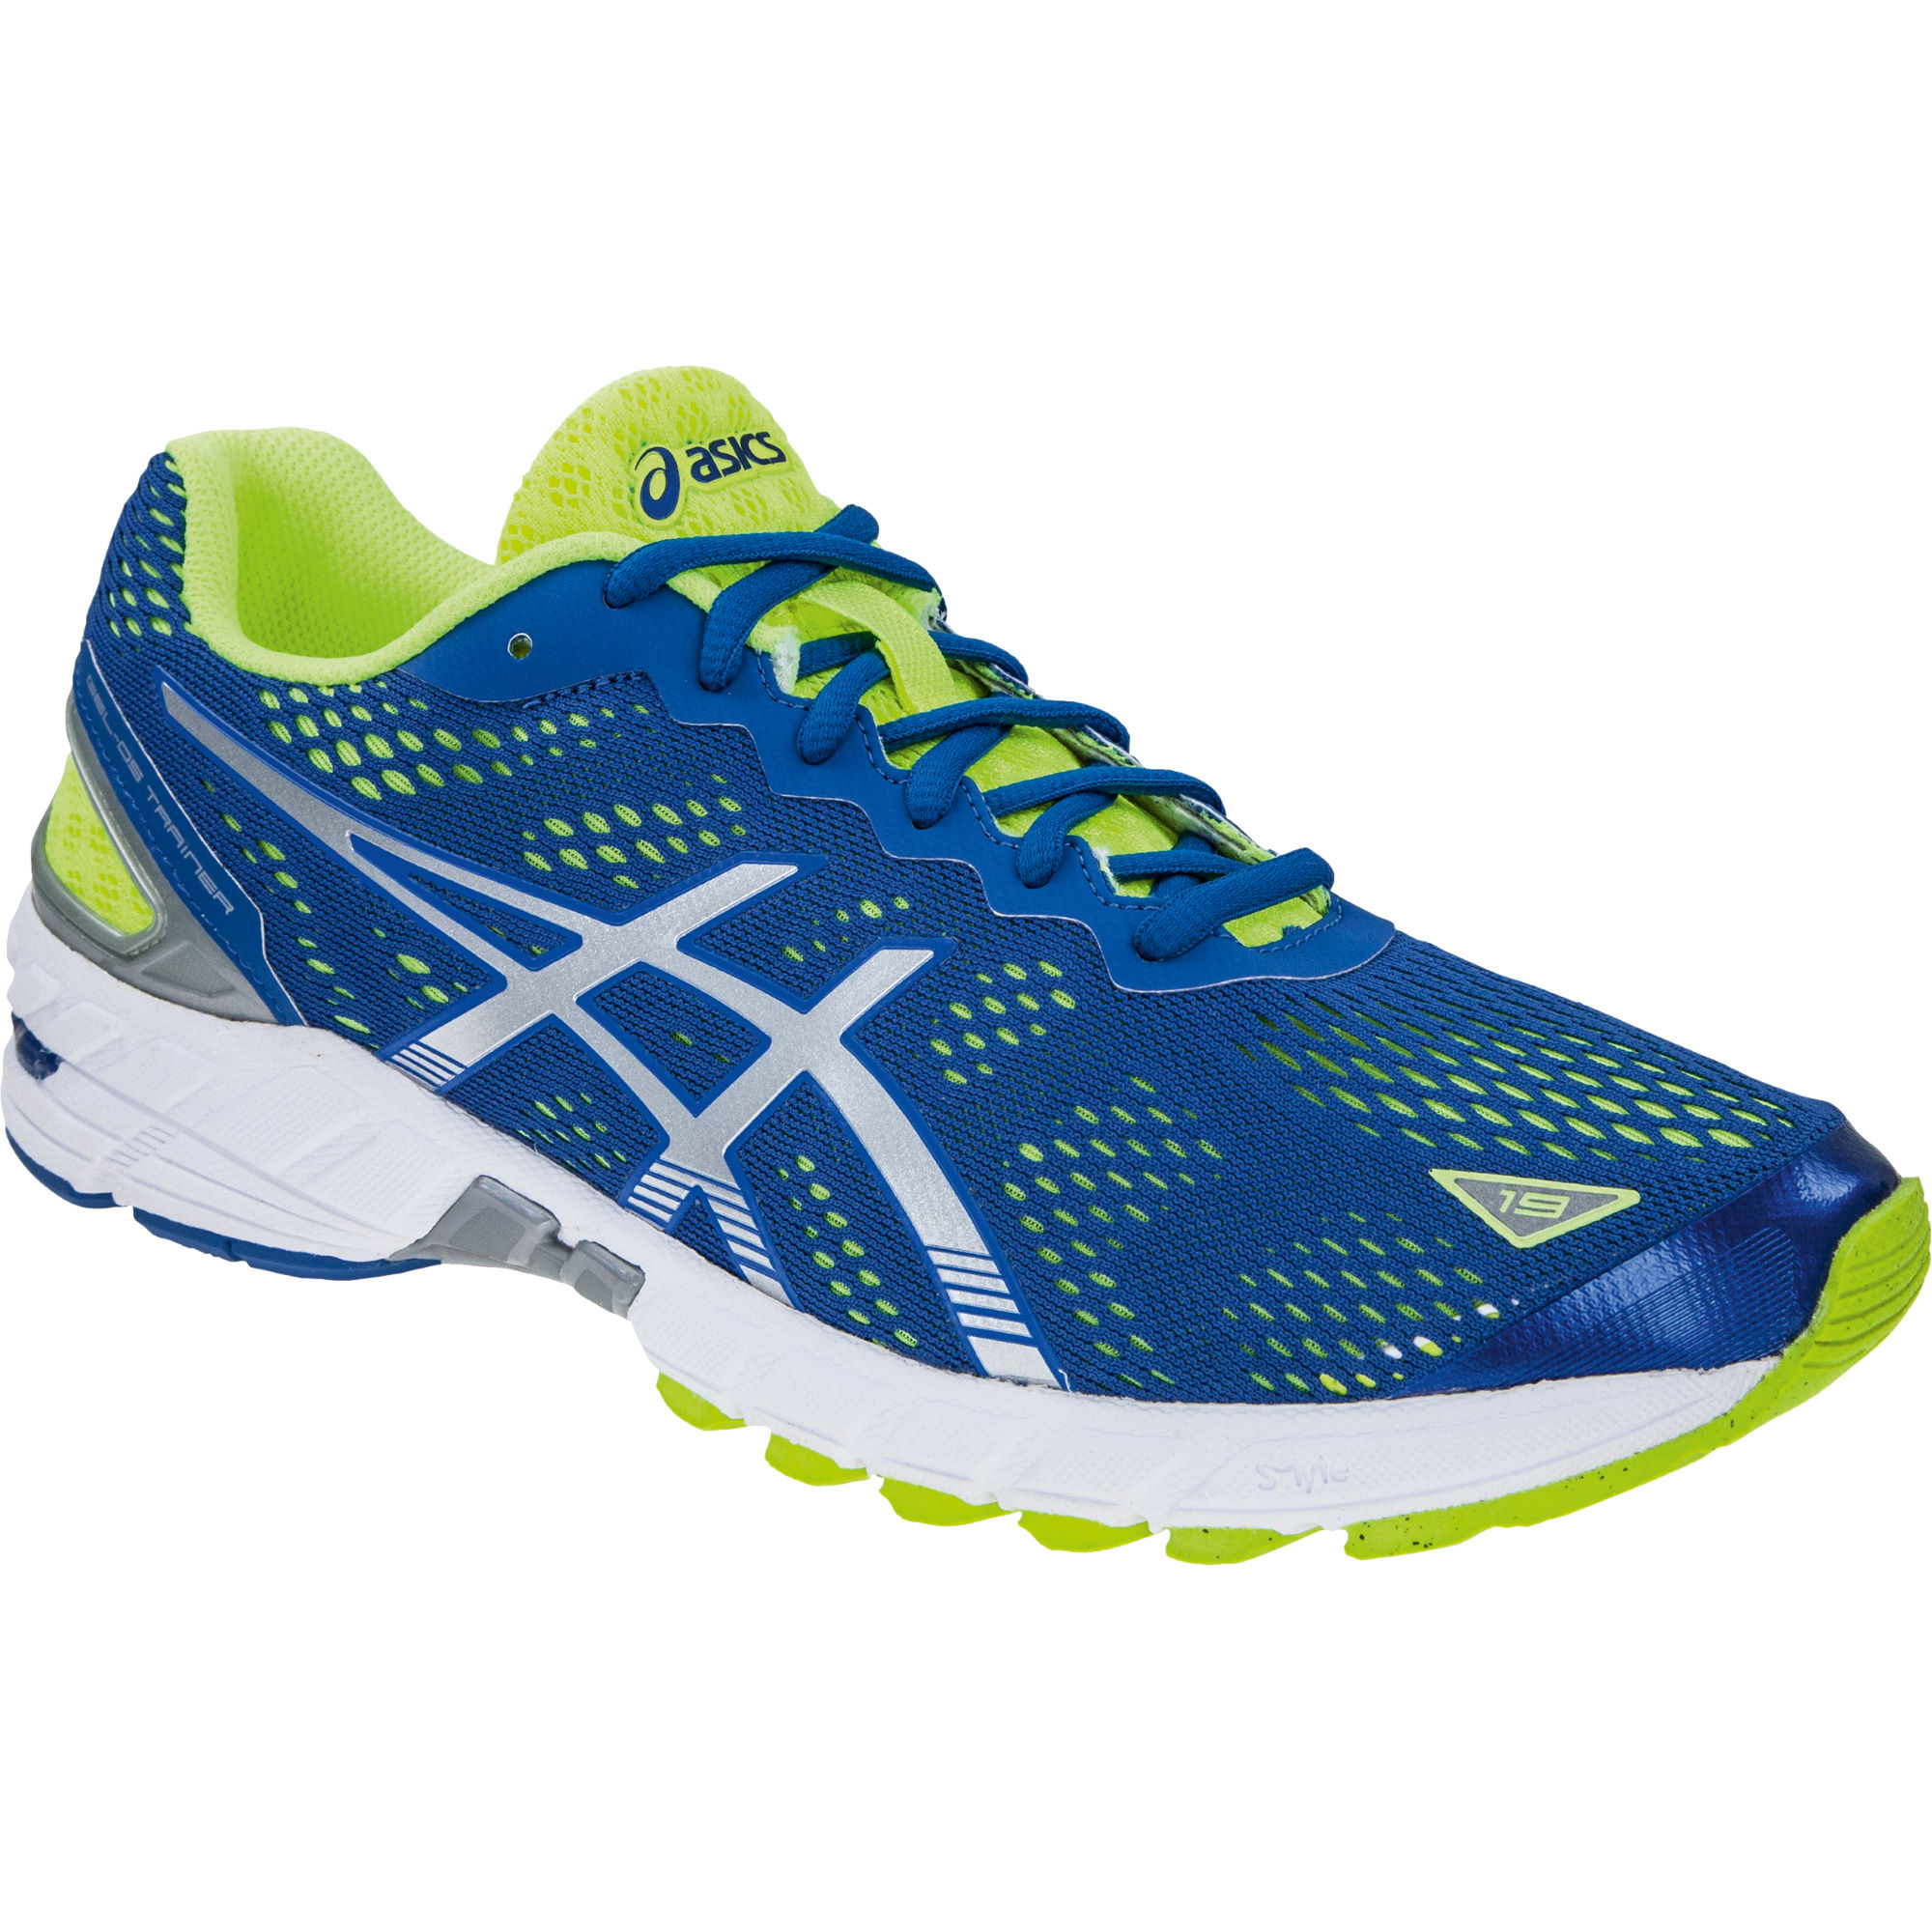 Wiggle   Asics Gel-DS Trainer 19 Shoes - SS14   Racing